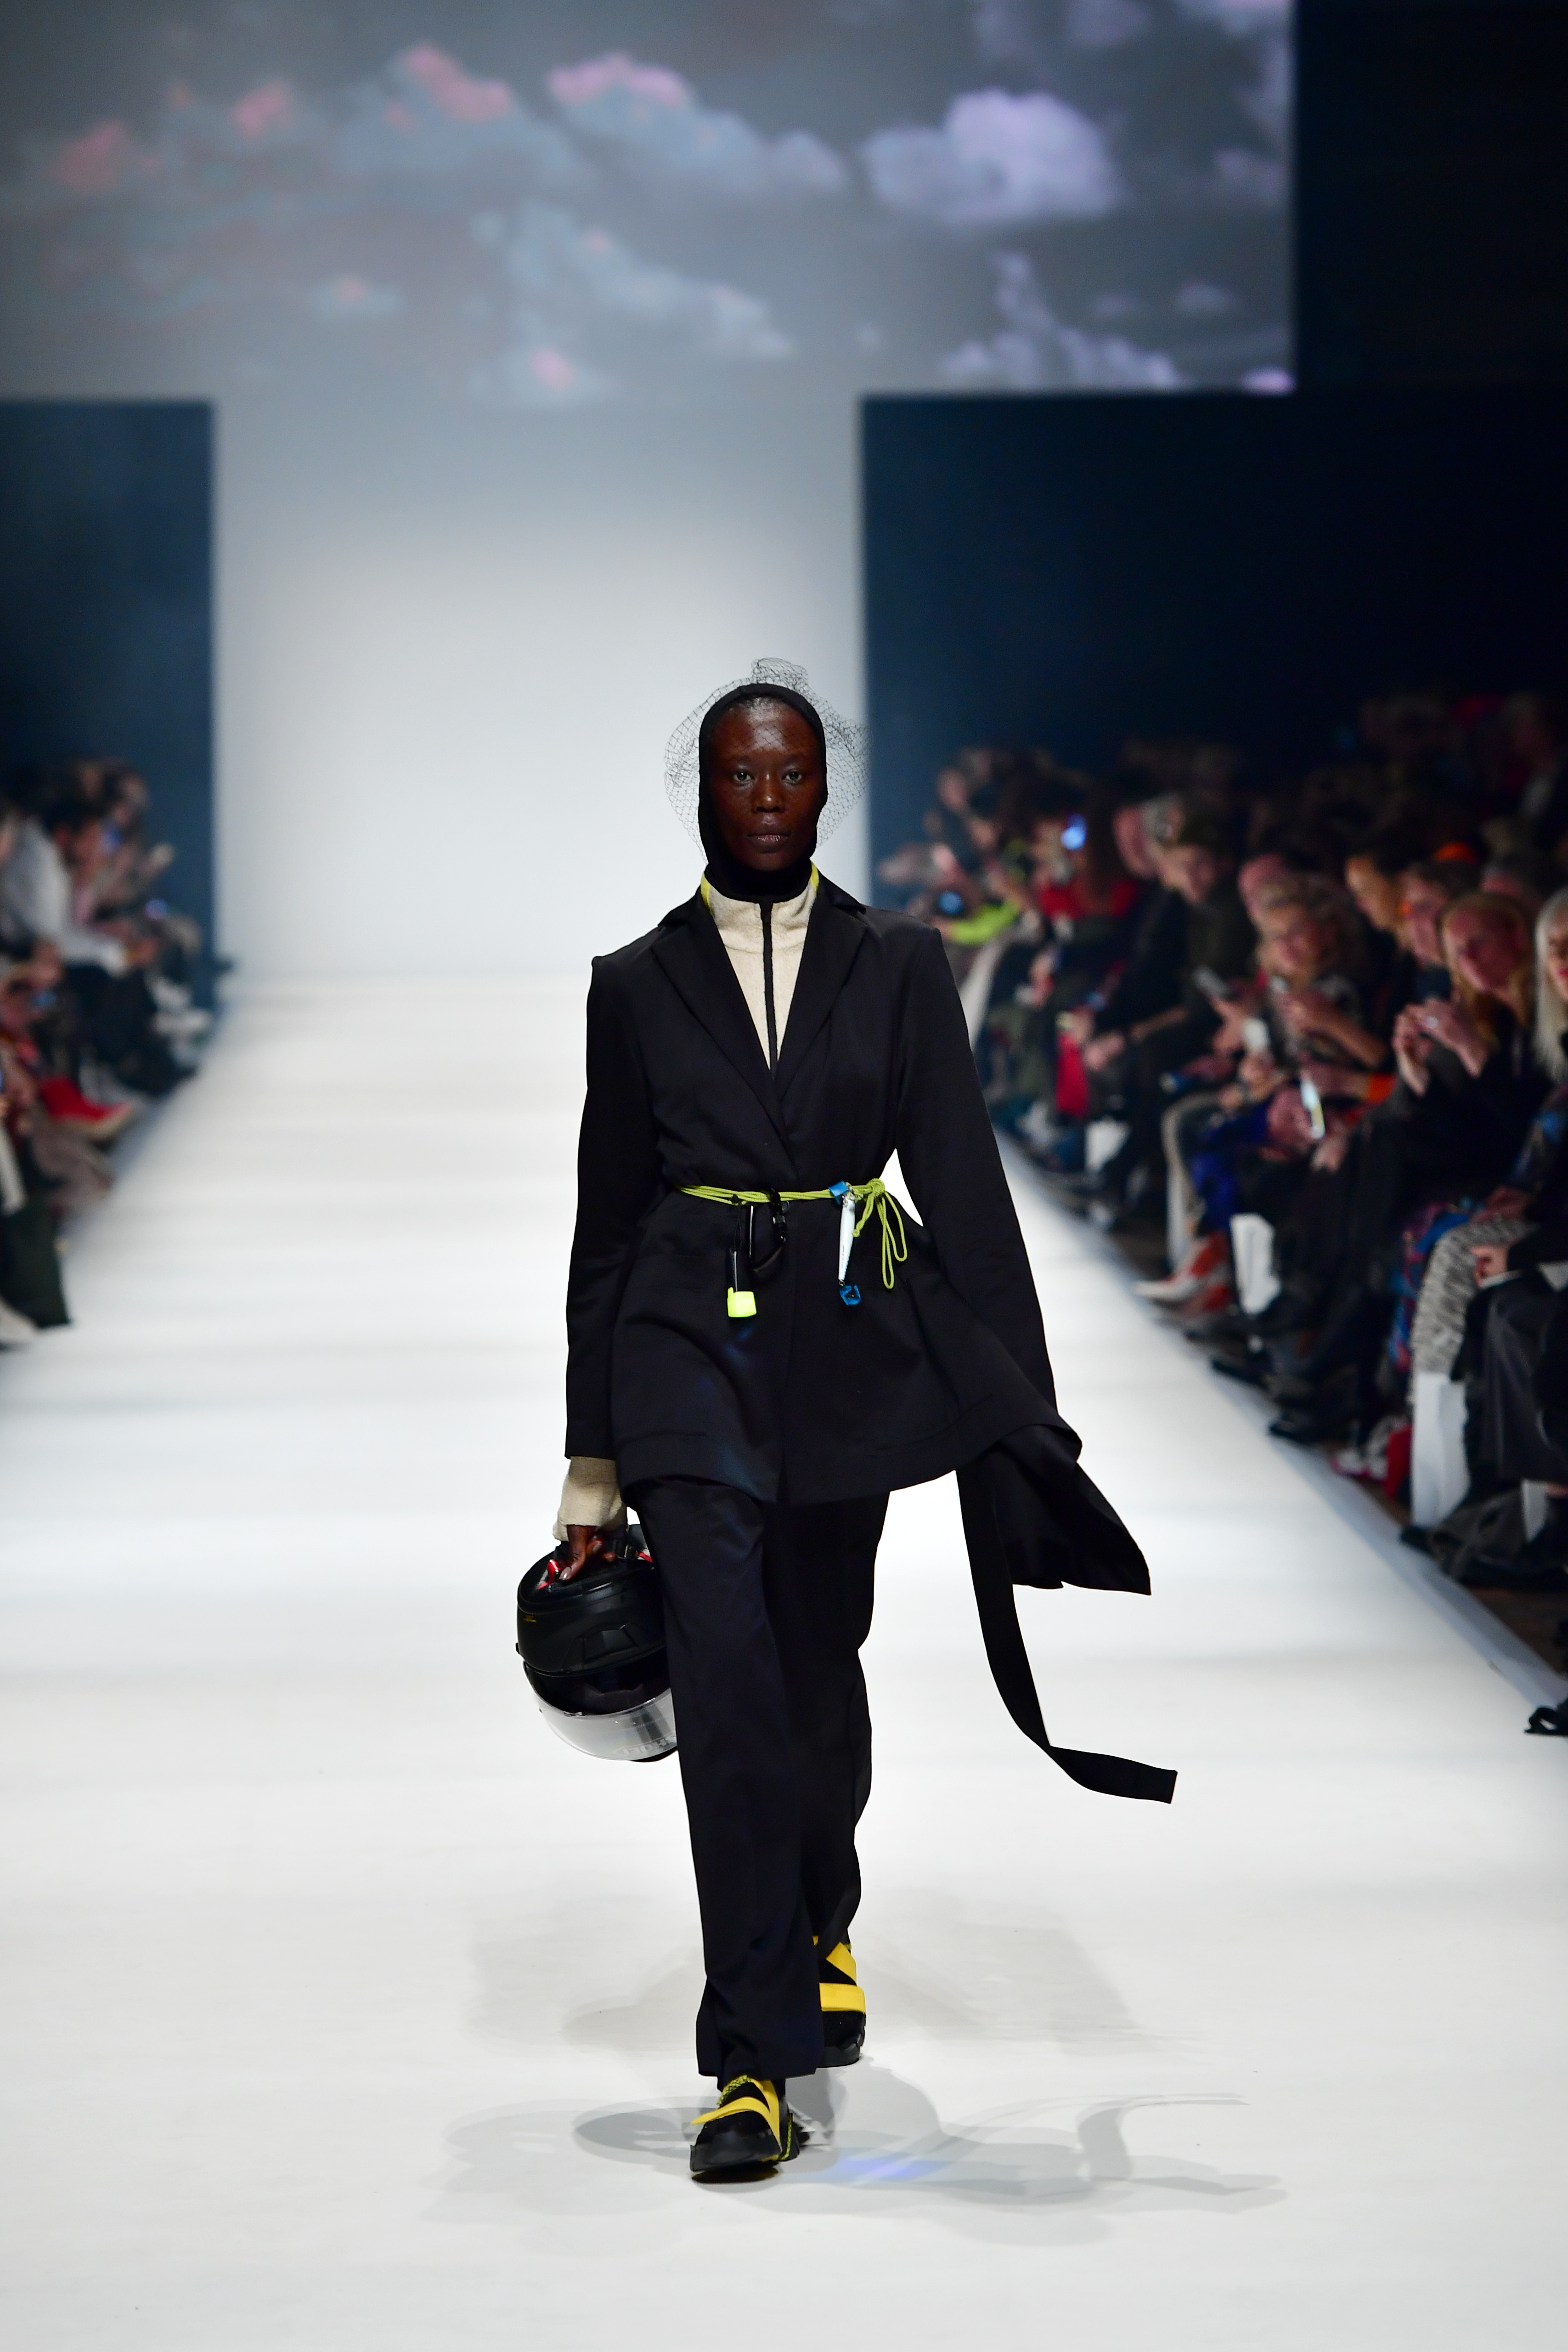 BERLIN, GERMANY - JANUARY 14: A model wearing a suit by Lara Krude, shirt by Hessnatur, hood by Falke, hairnet by Spatz Hutdesign, leg pieces by Trippen, socks by Swedish Stockings and shoe soles by For Ever walks the runway at the Neonyt show during Berlin Fashion Week Autumn/Winter 2020 at Kraftwerk Mitte on January 14, 2020 in Berlin, Germany. (Photo by Alexander Koerner/Getty Images for MBFW)